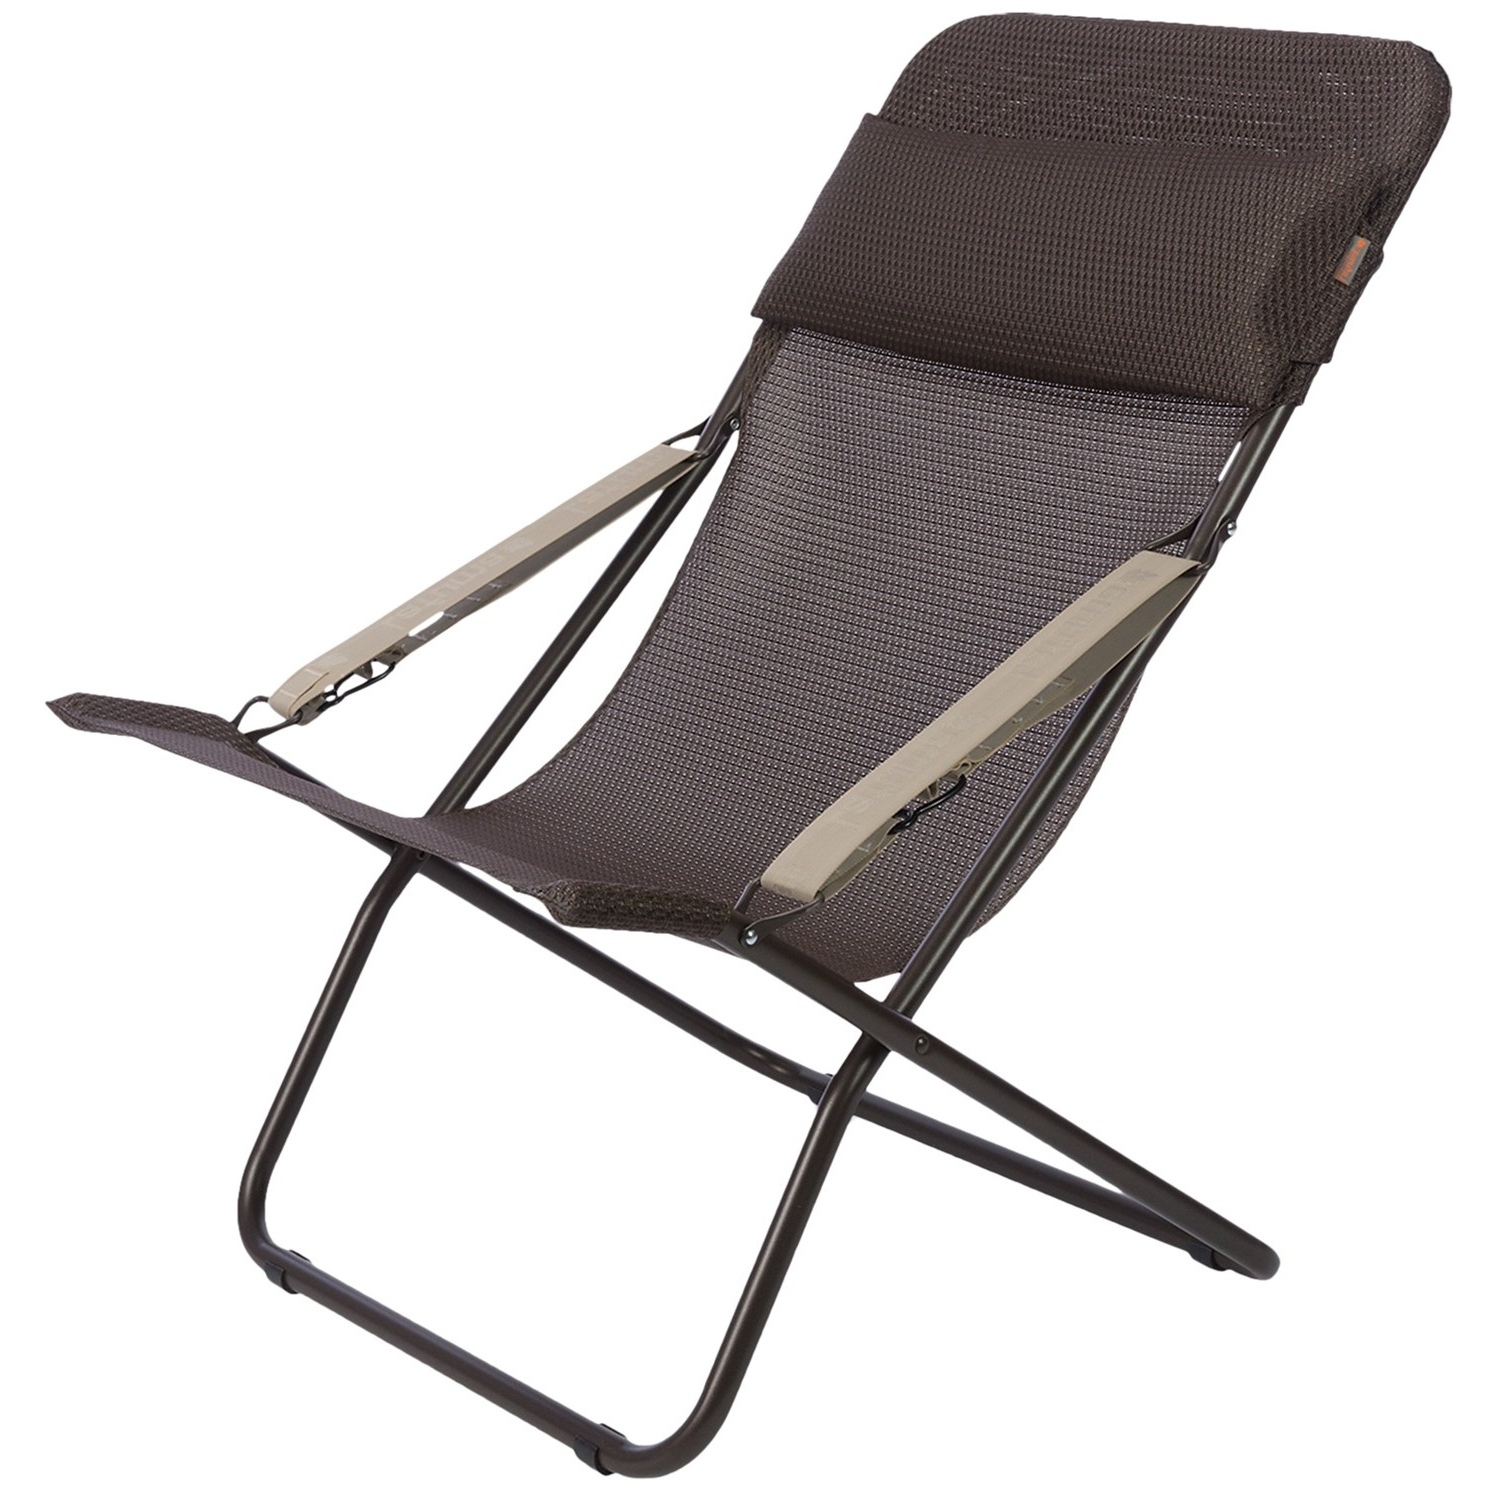 Chaise Lounge Chairs At Target Throughout 2017 Outdoor : Outdoor Lounge Chairs Target Lounge Chairs Folding (View 4 of 15)